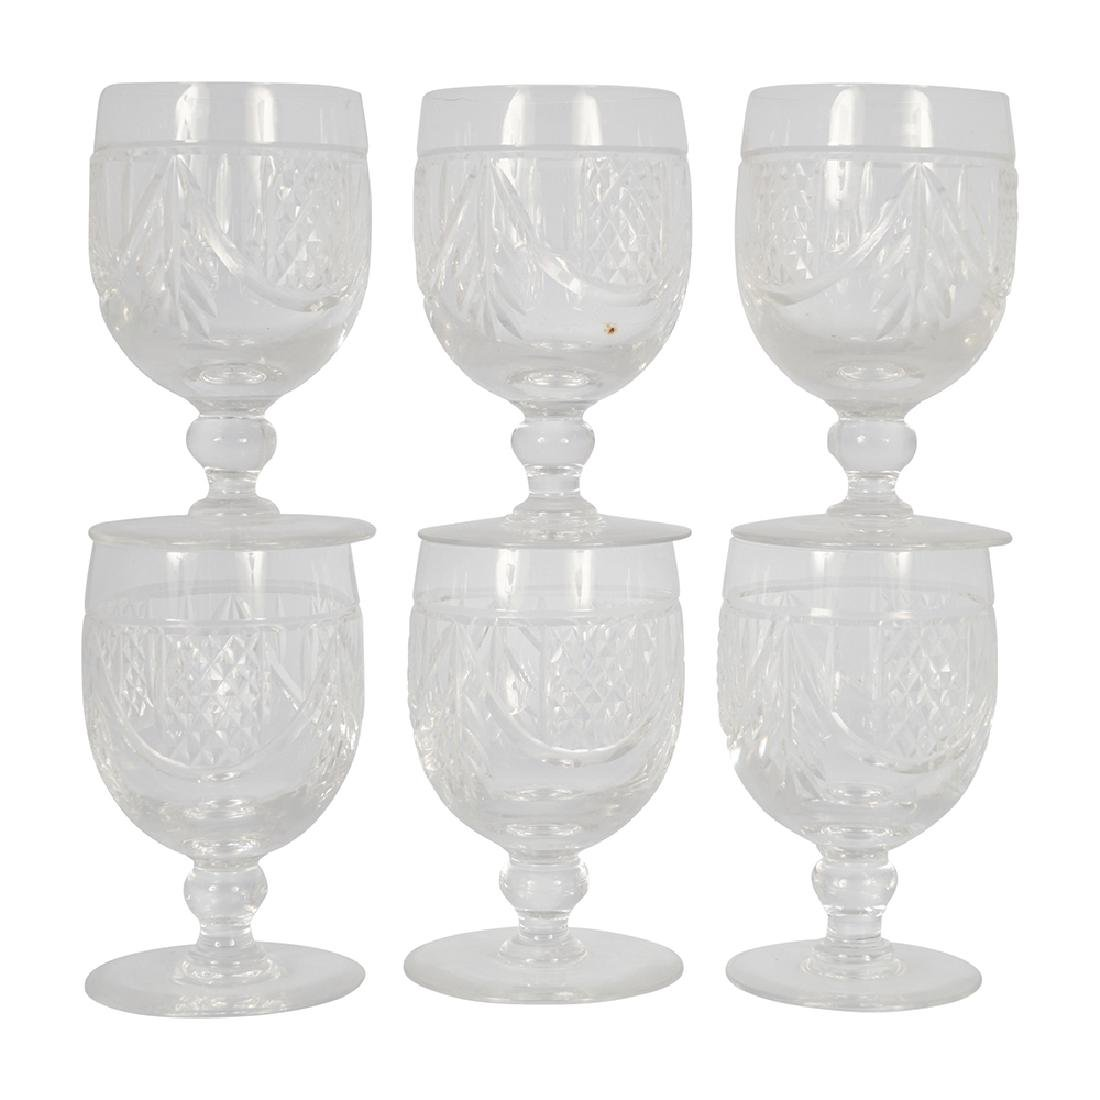 SIX CRYSTAL GOBLETS